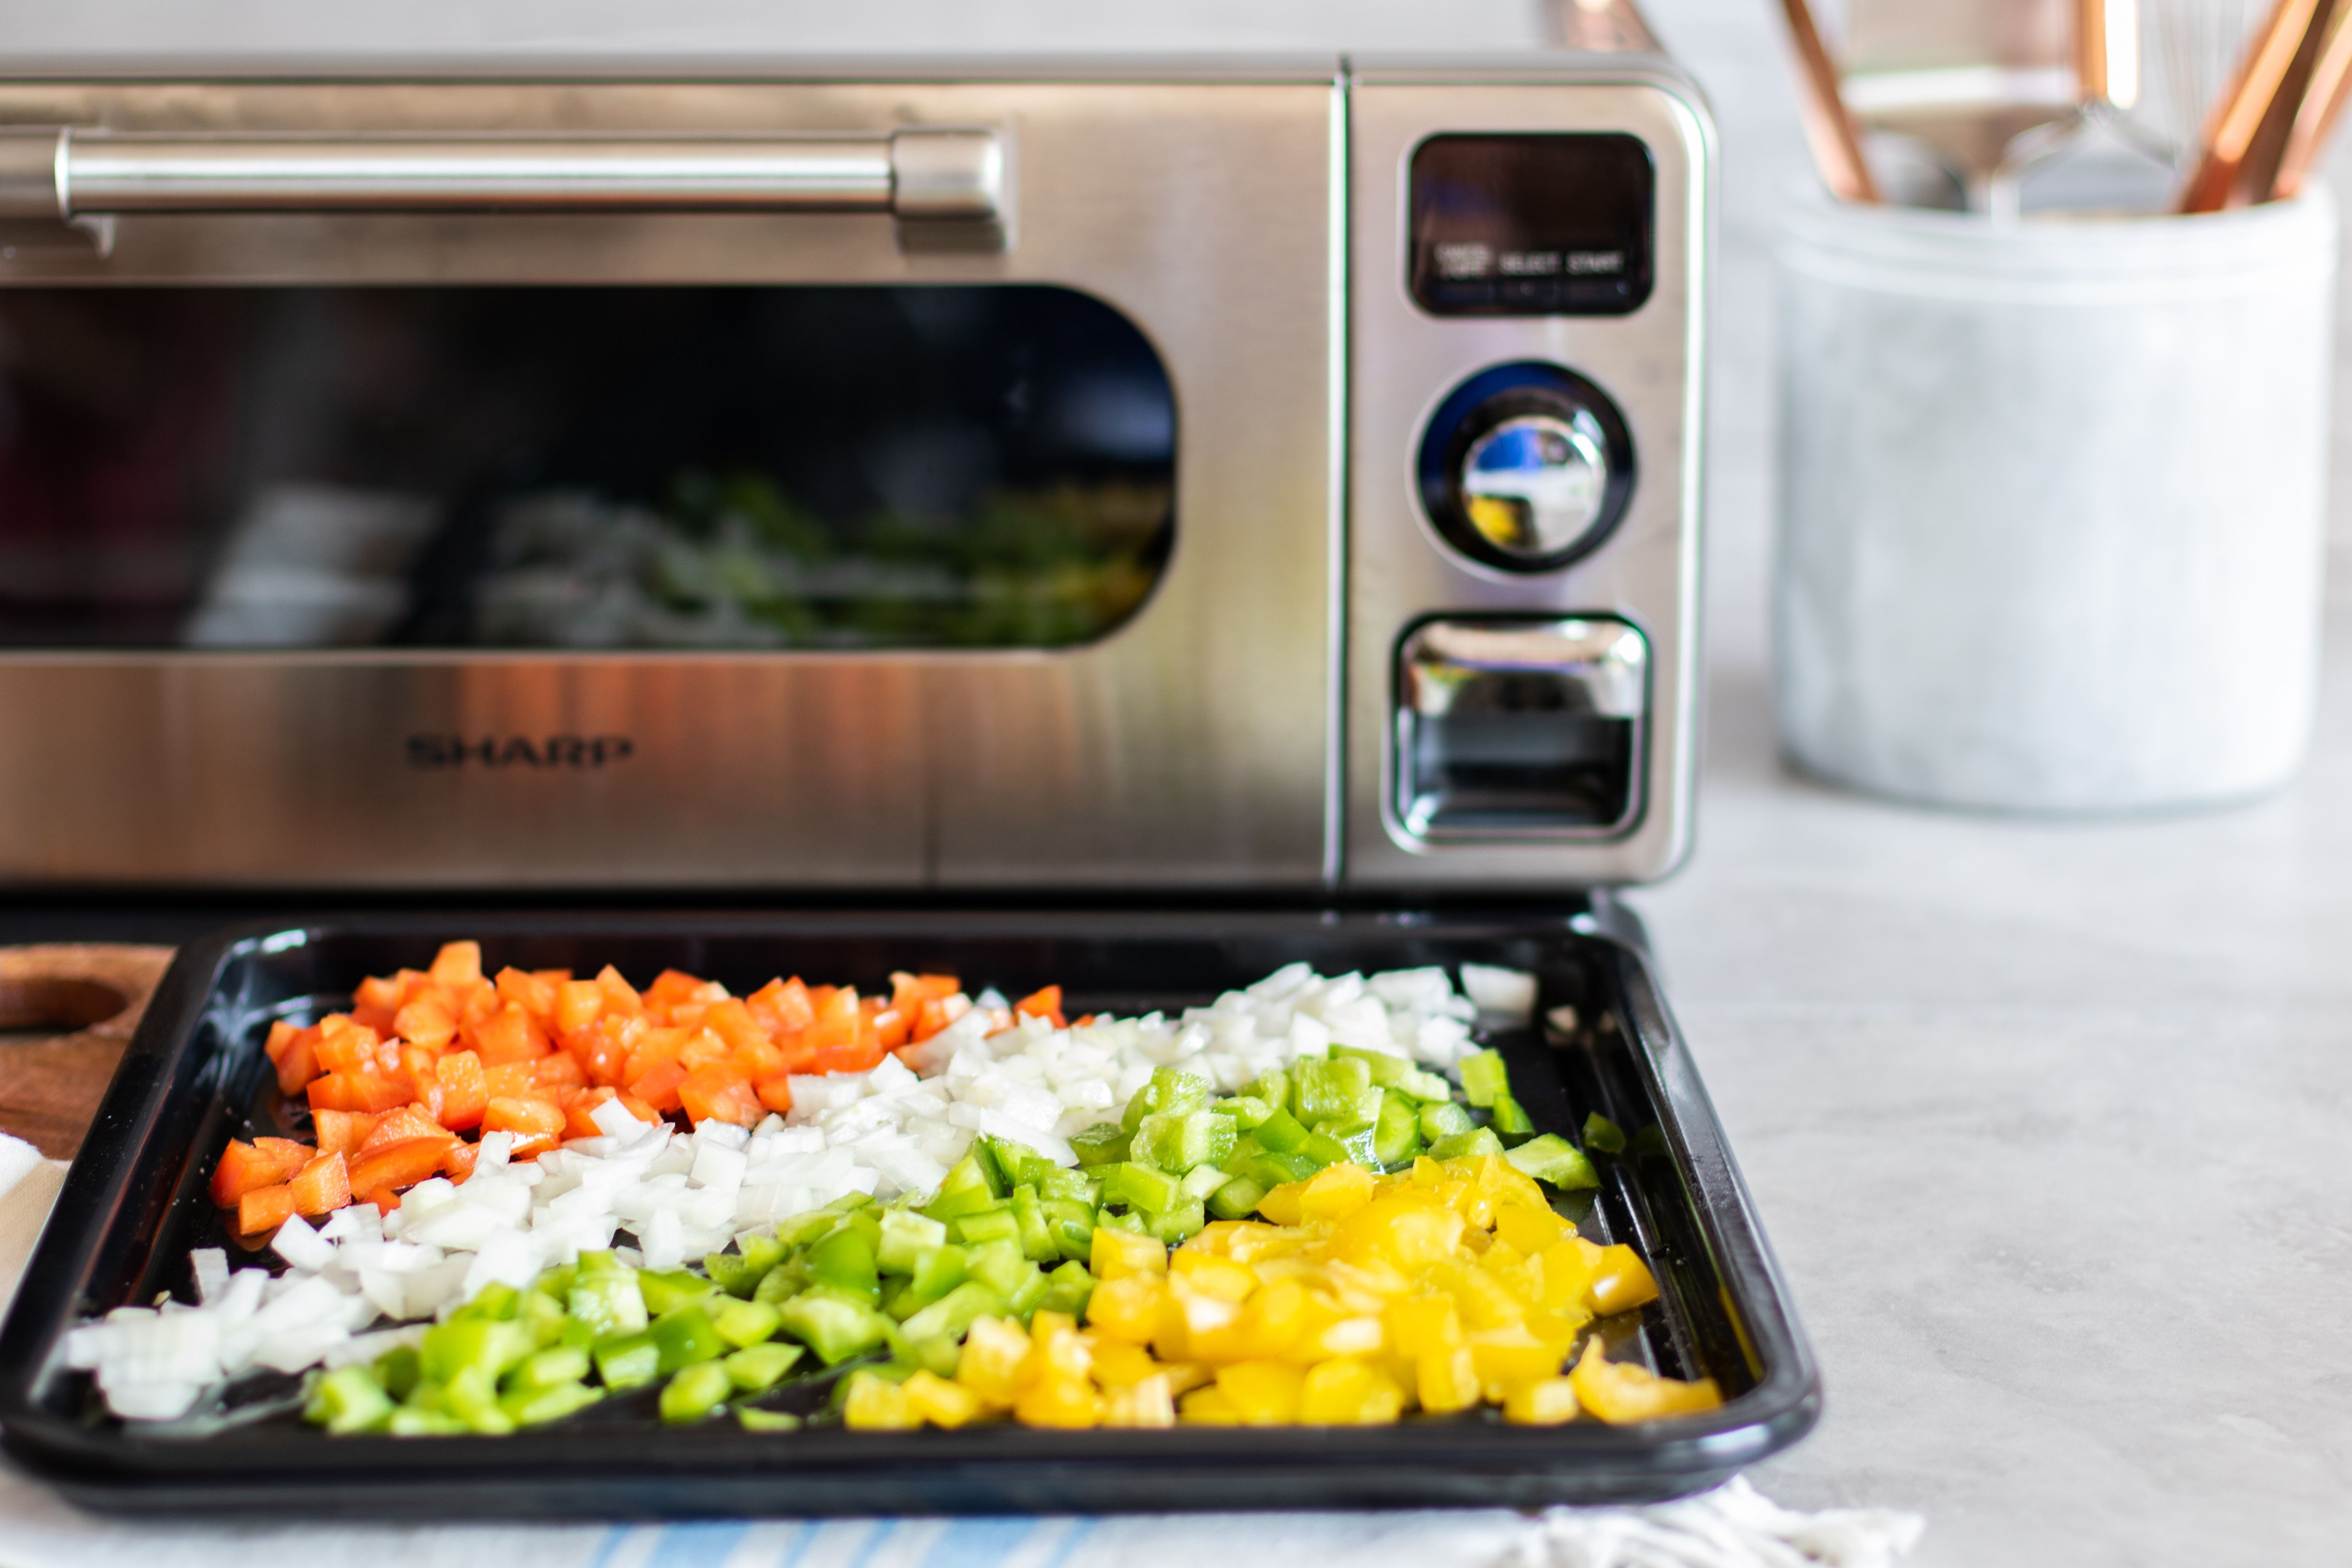 The Sharp Superheated Steam Countertop Oven Has Five Versatile